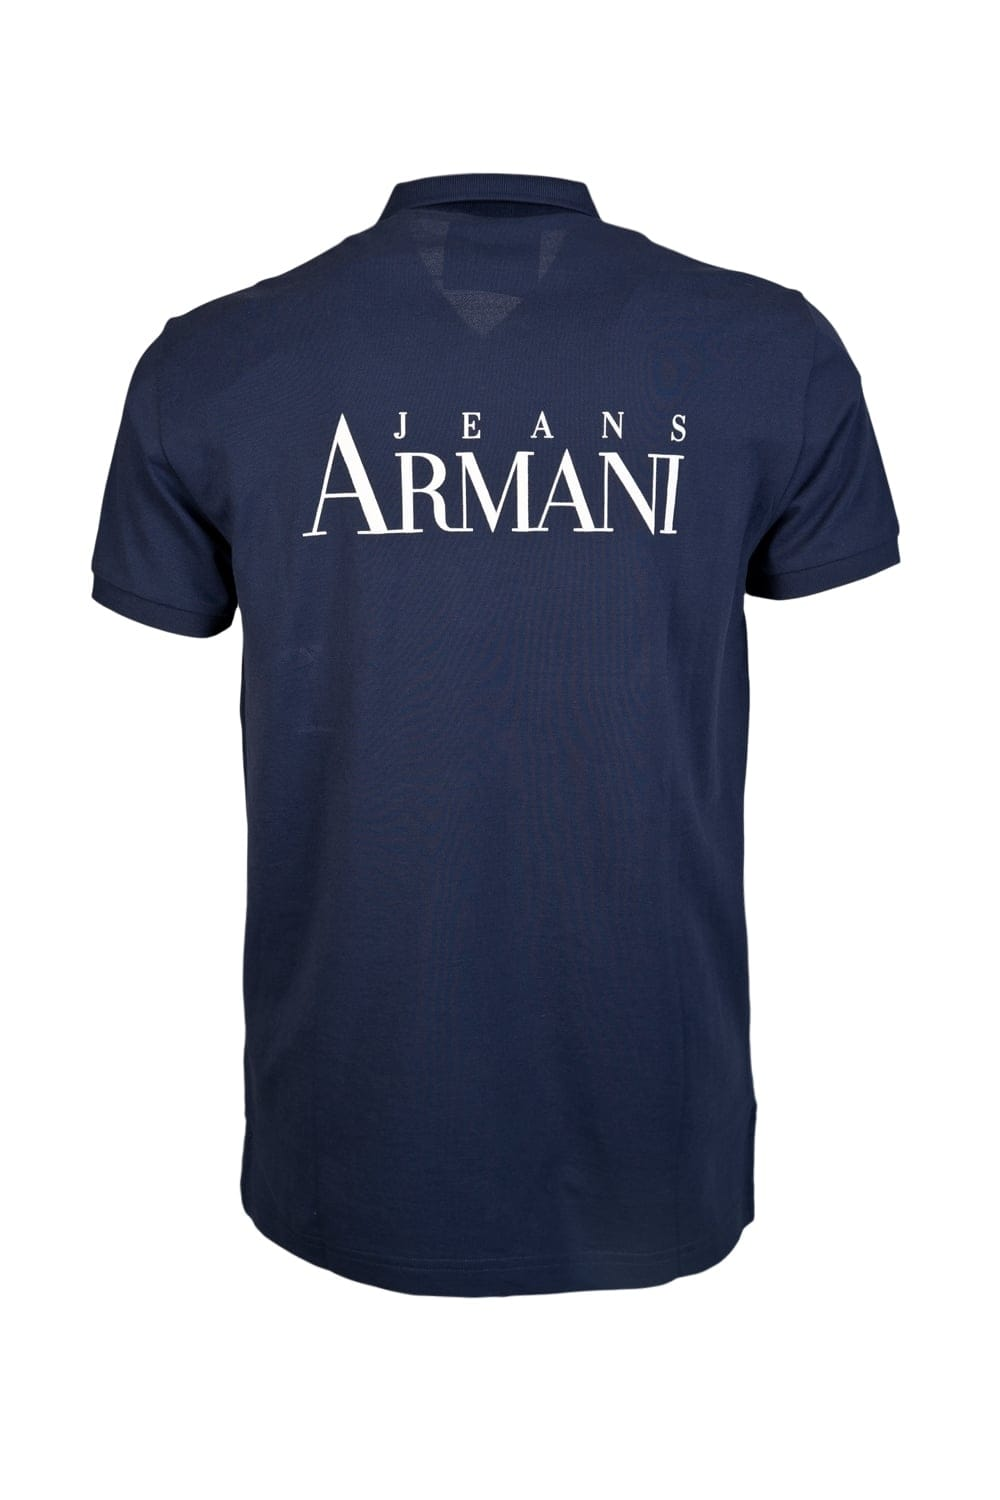 Armani jeans polo t shirt c6m1aqk armani jeans from sage for Polo shirt and jeans